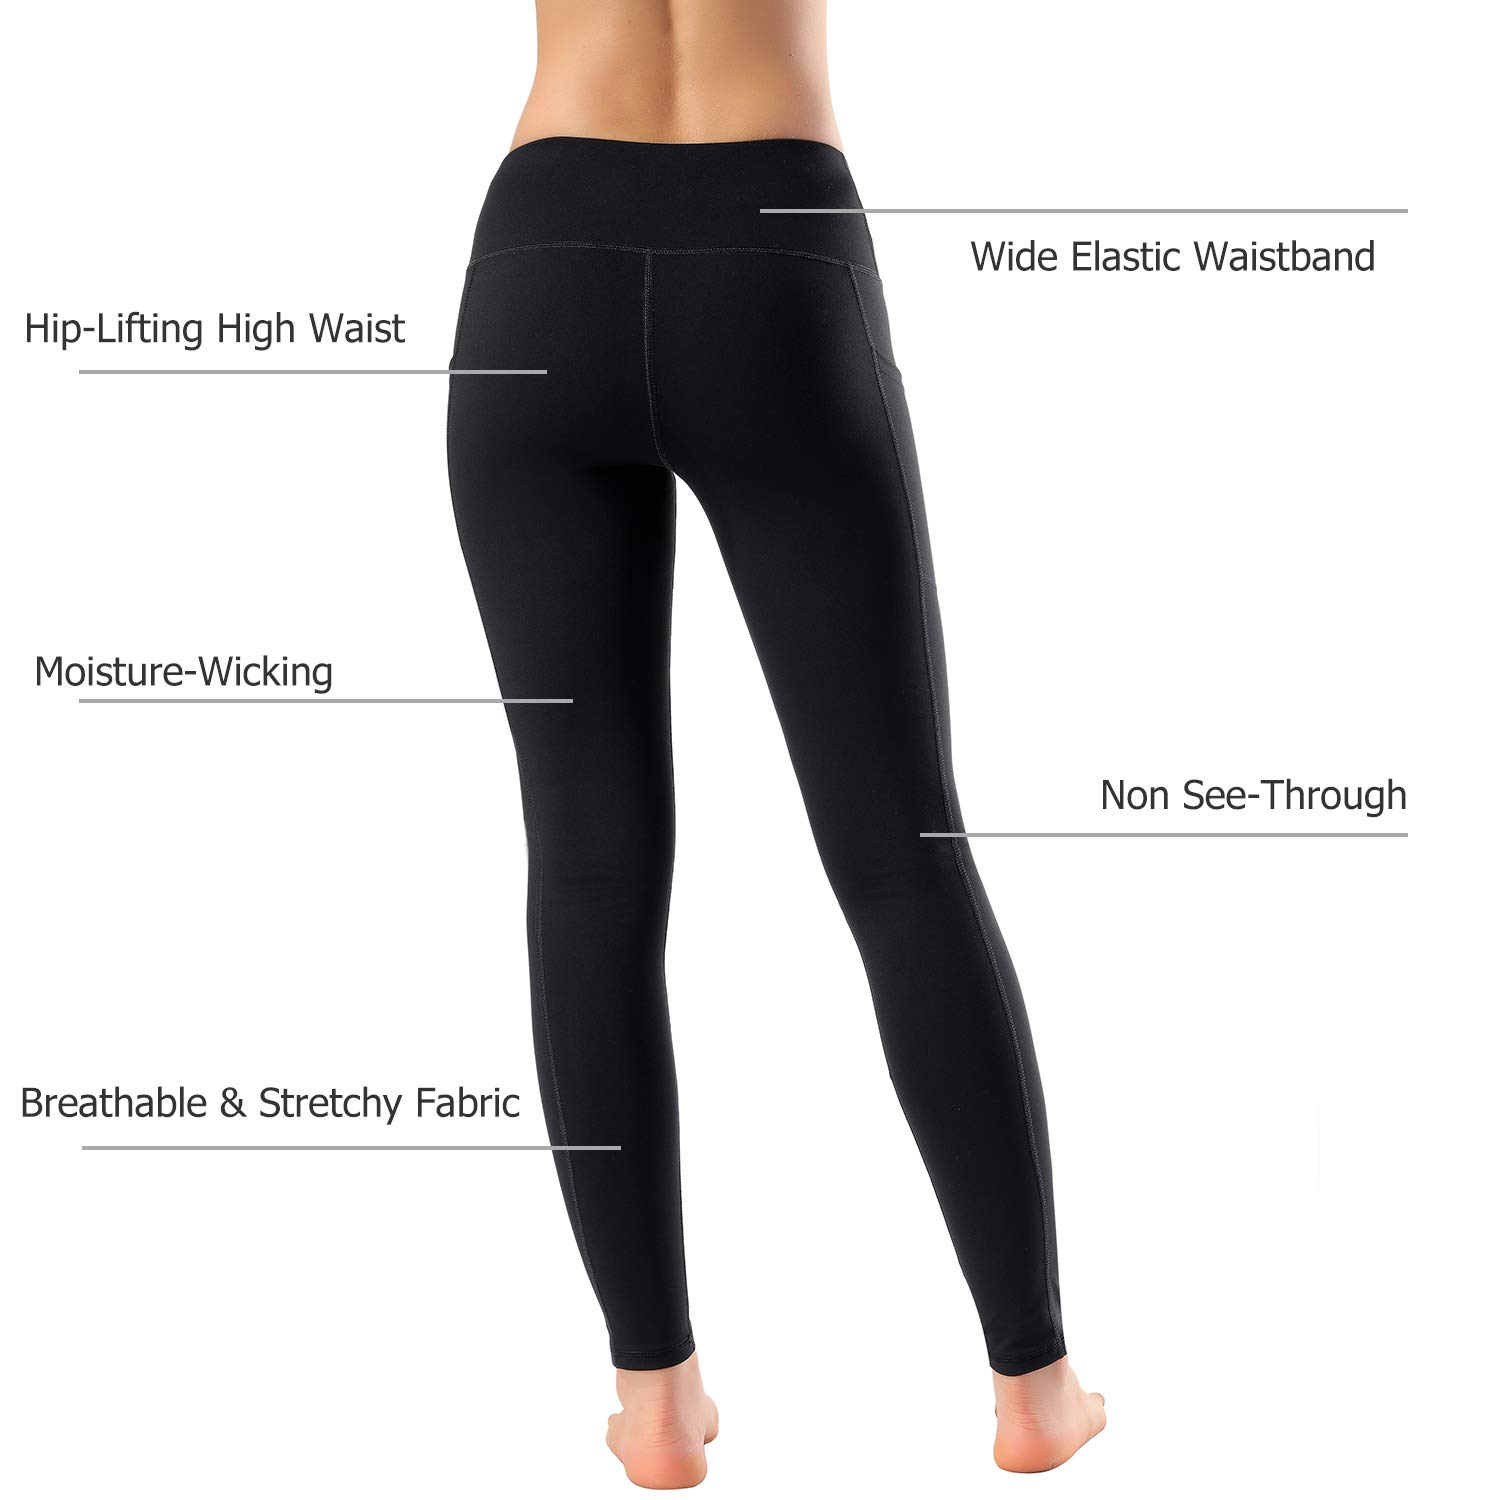 Women's High Waist Yoga Pants with Side Pockets & Inner Pocket Tummy Control Workout Running 4-Way Stretch Sports Leggings, Medium by HOFI (Image #6)